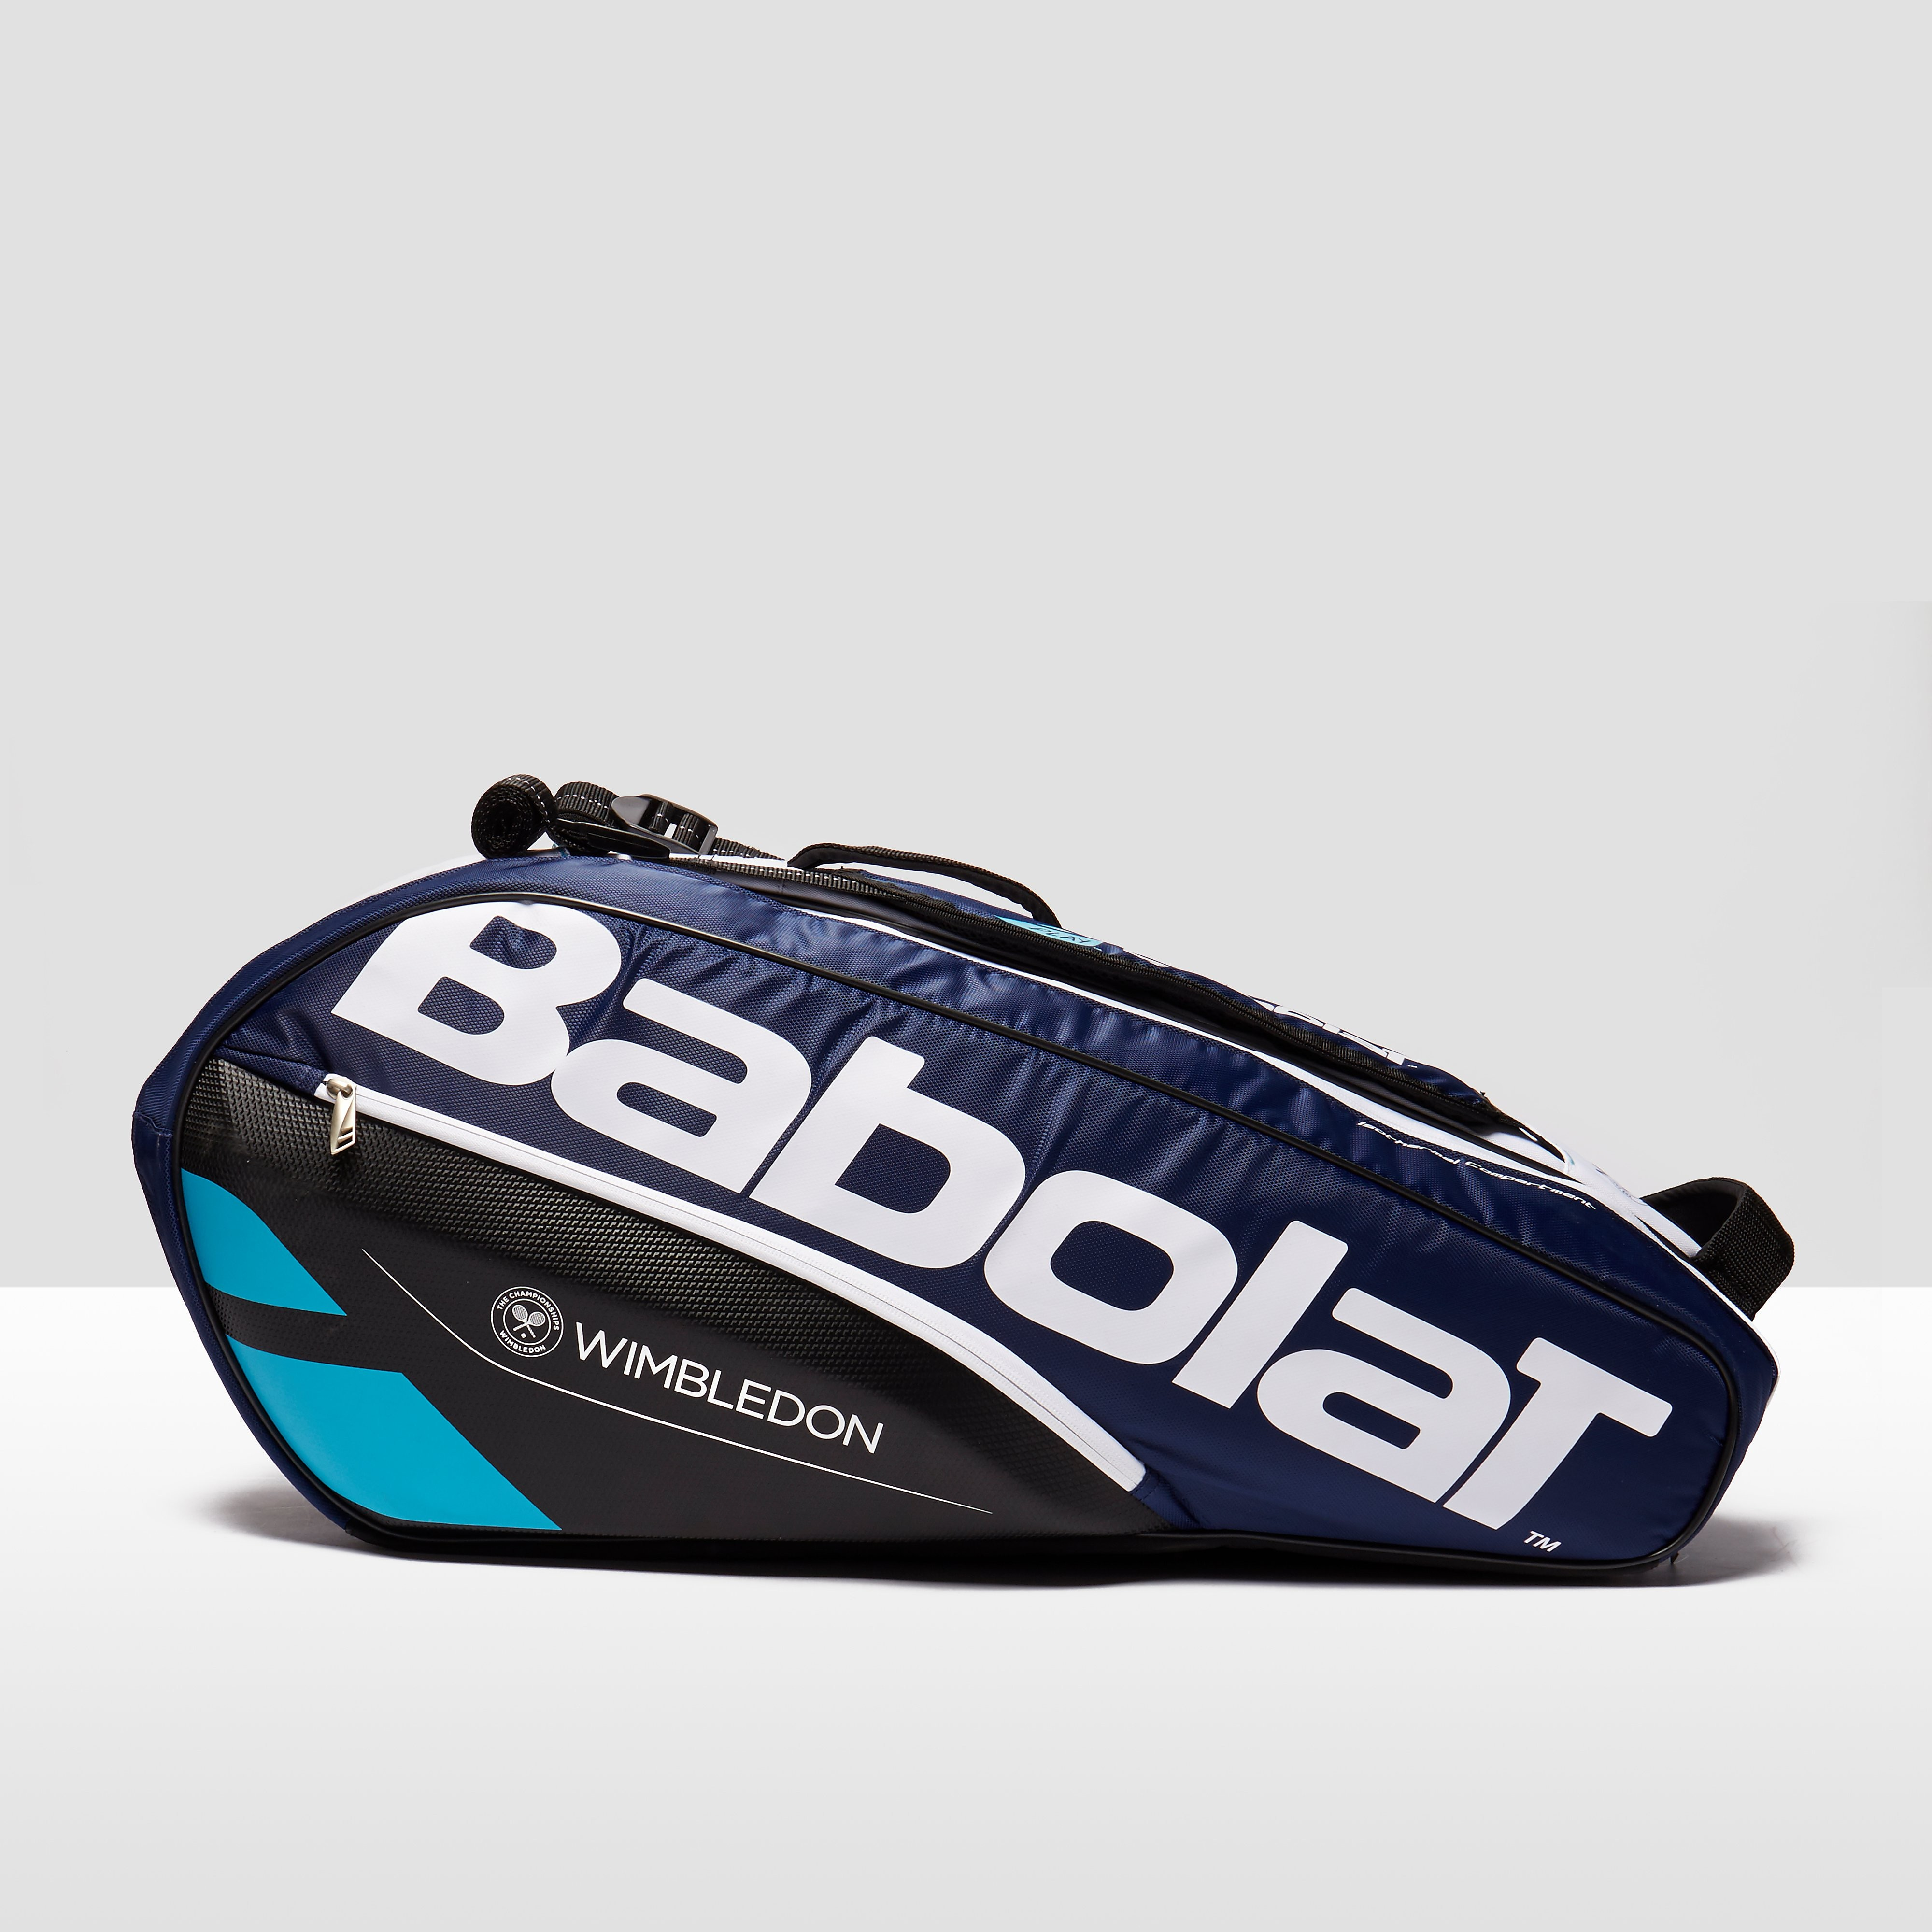 Babolat Pure Strike Wimbledon Racket Bag